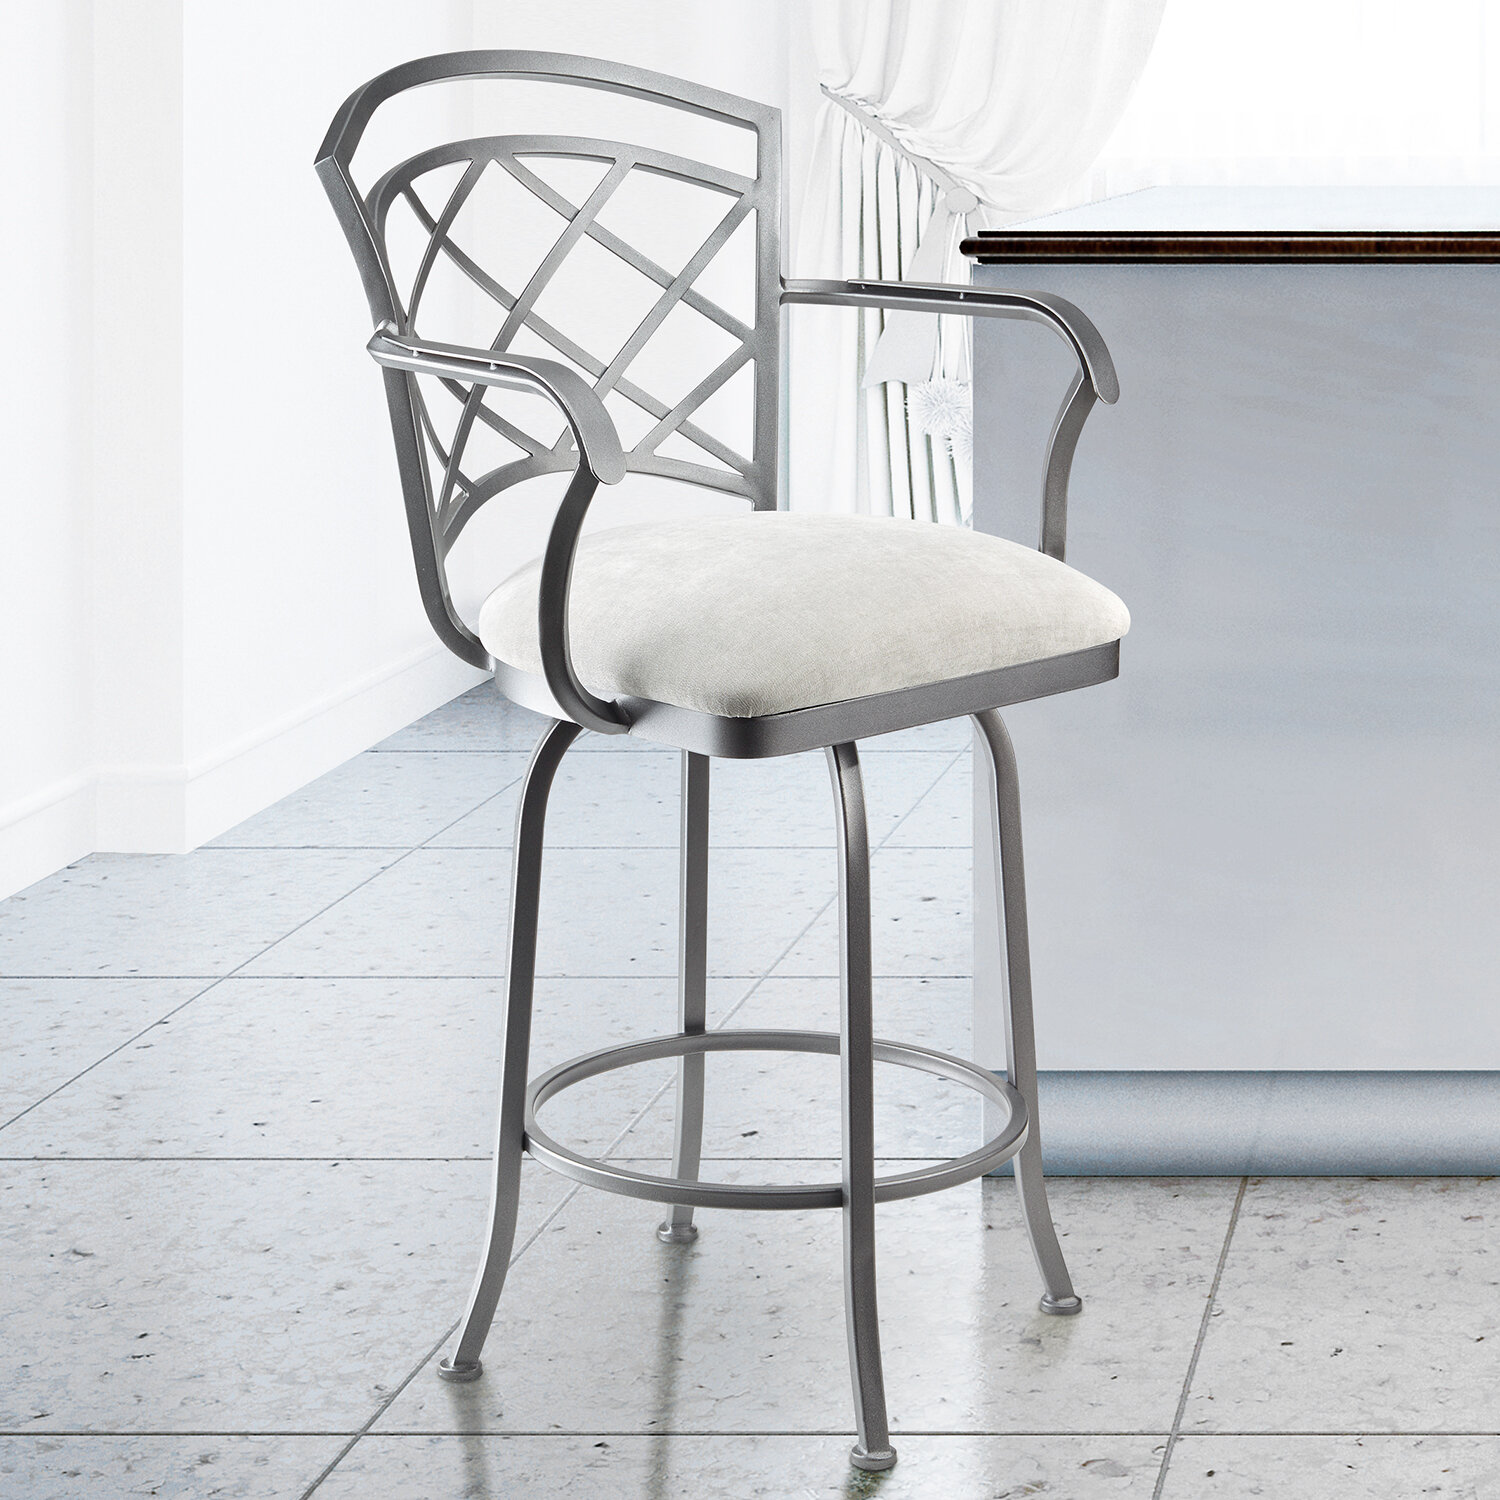 Excellent Taylor Grey Home Athens 26 Counter Height Metal Swivel Barstool In Sonoma Seagrey Fabric And Flint Rock Grey Finish Alphanode Cool Chair Designs And Ideas Alphanodeonline